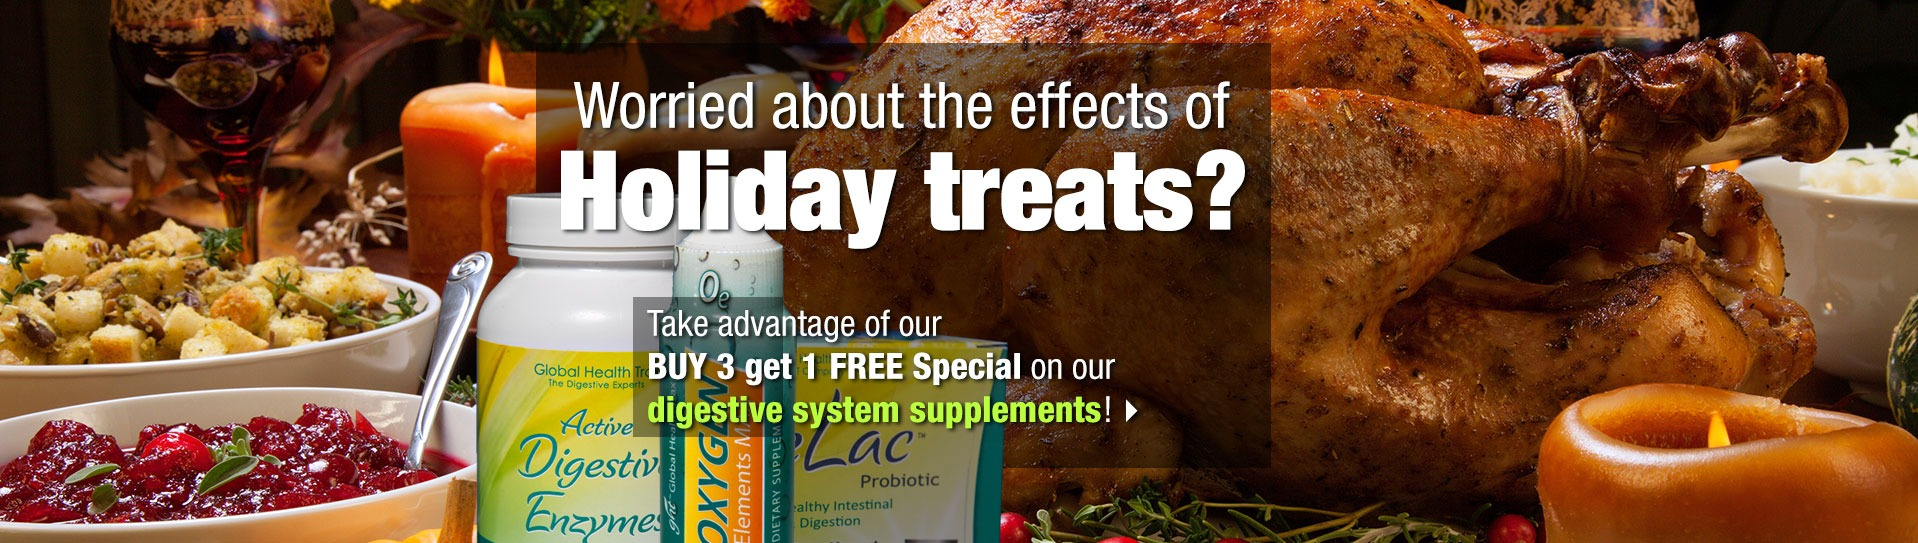 Holiday foods promo slide